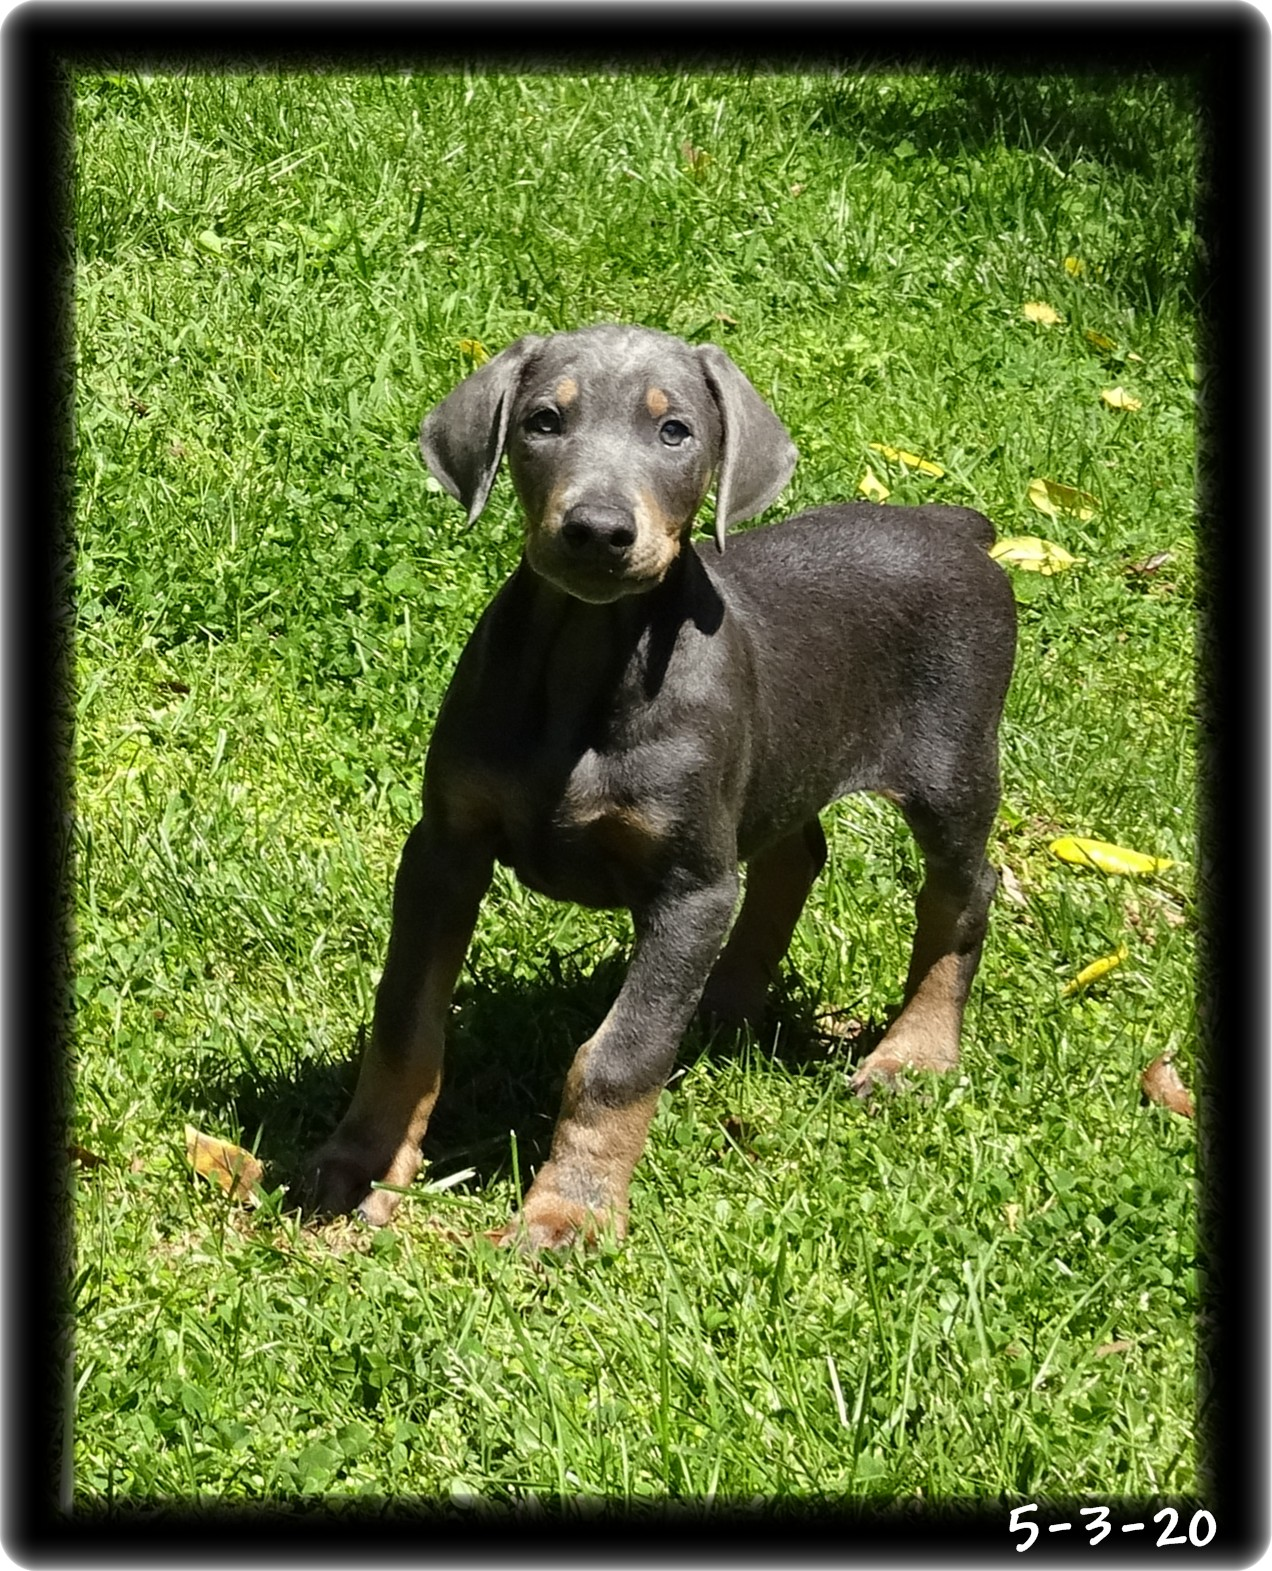 Blu ...  born 2-29-20 -  PLACED - his buddy Mason different residence. Both establish clients ... Massachusetts - both delivered